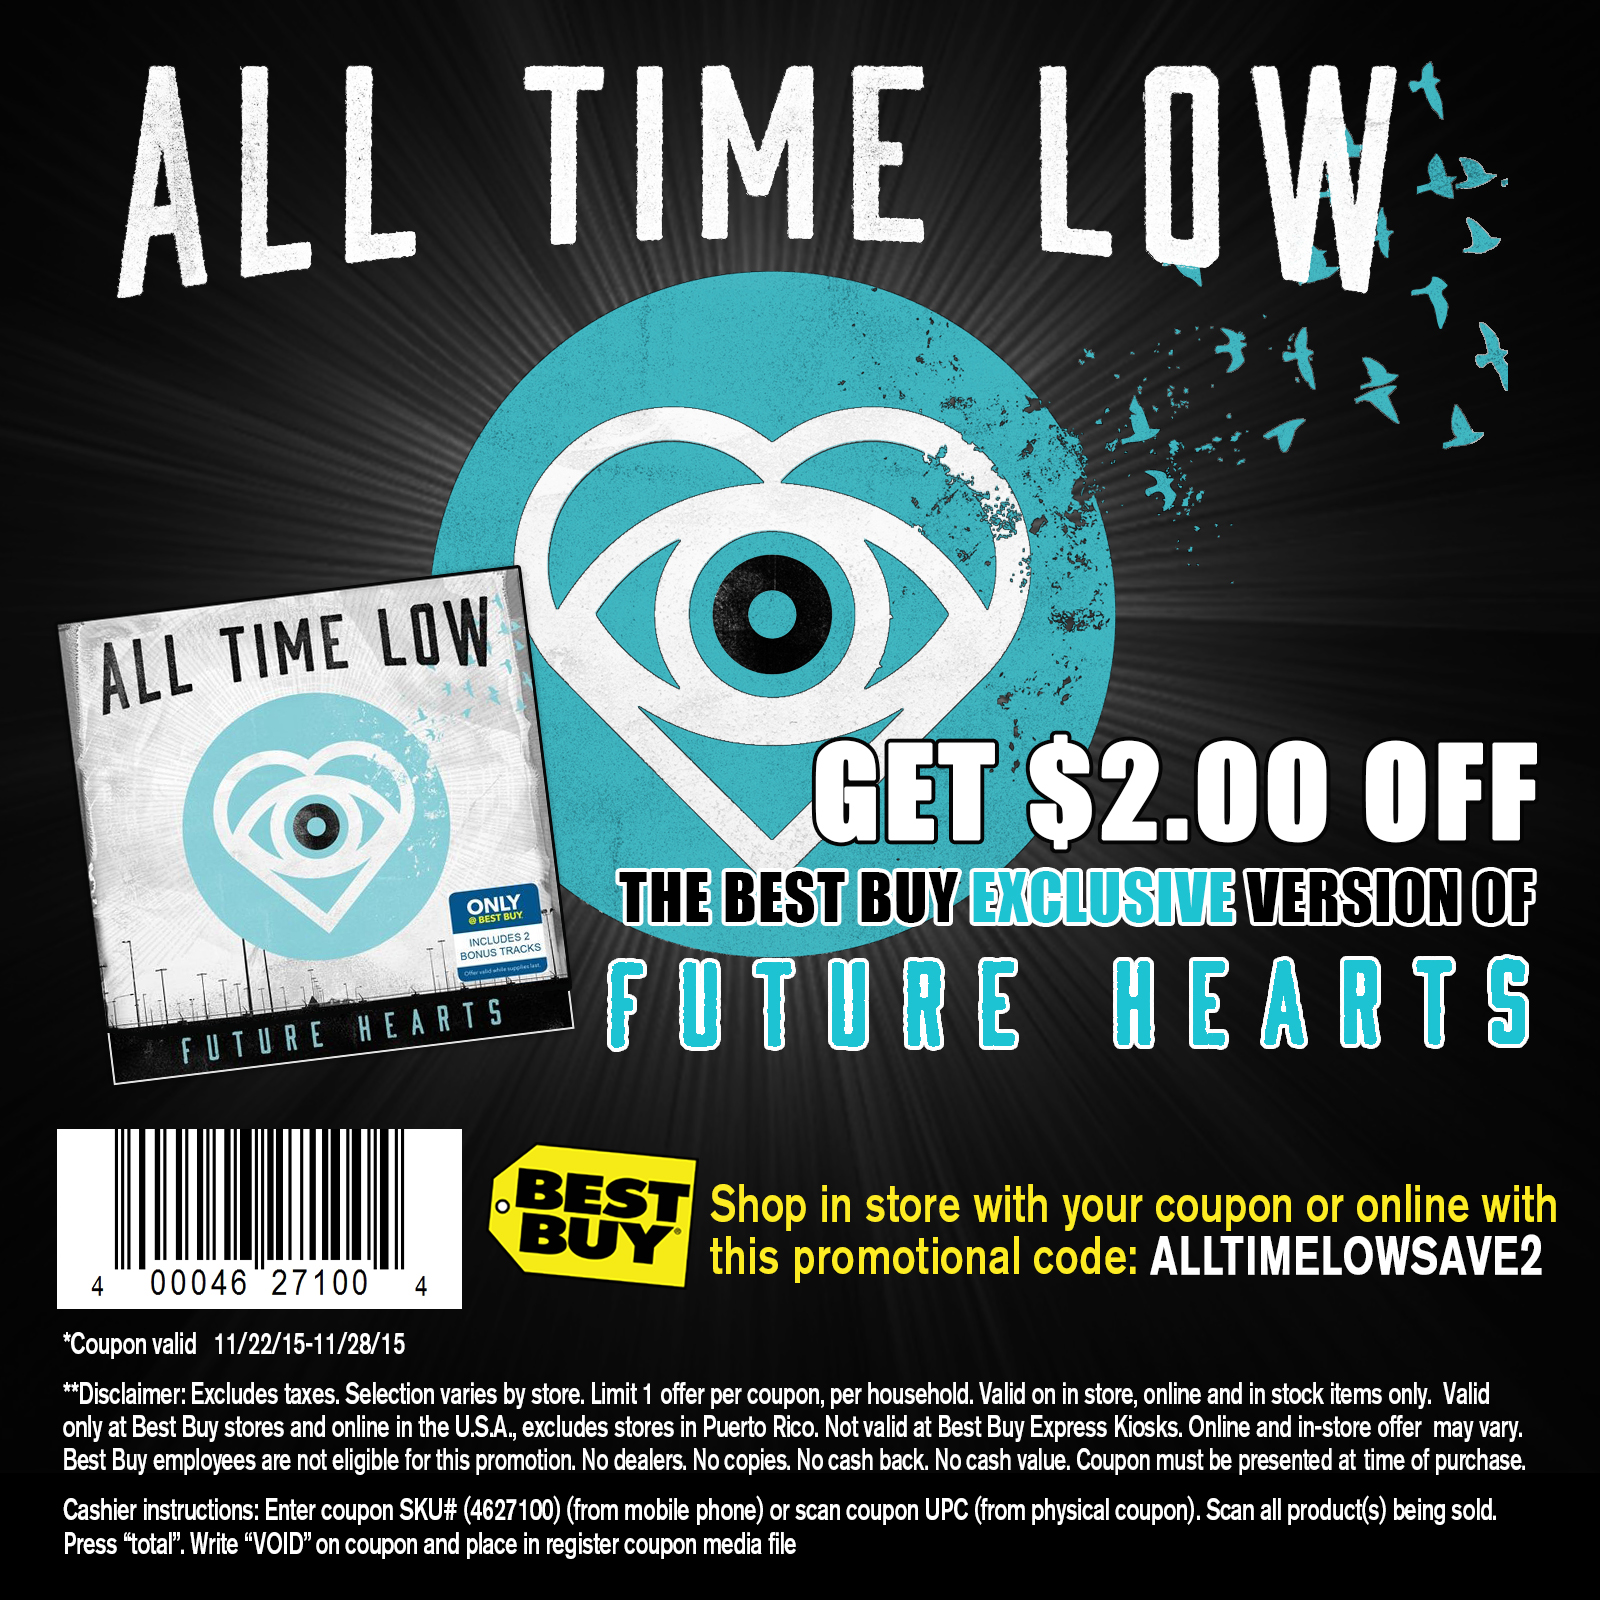 Add our exclusive customer appreciation promo/coupon code CHEAP to receive additional savings on All Time Low tickets. After adding the this promotional offer code, the savings will be shown on our secure checkout page. Find deals on All Time Low tickets at our reputable website.